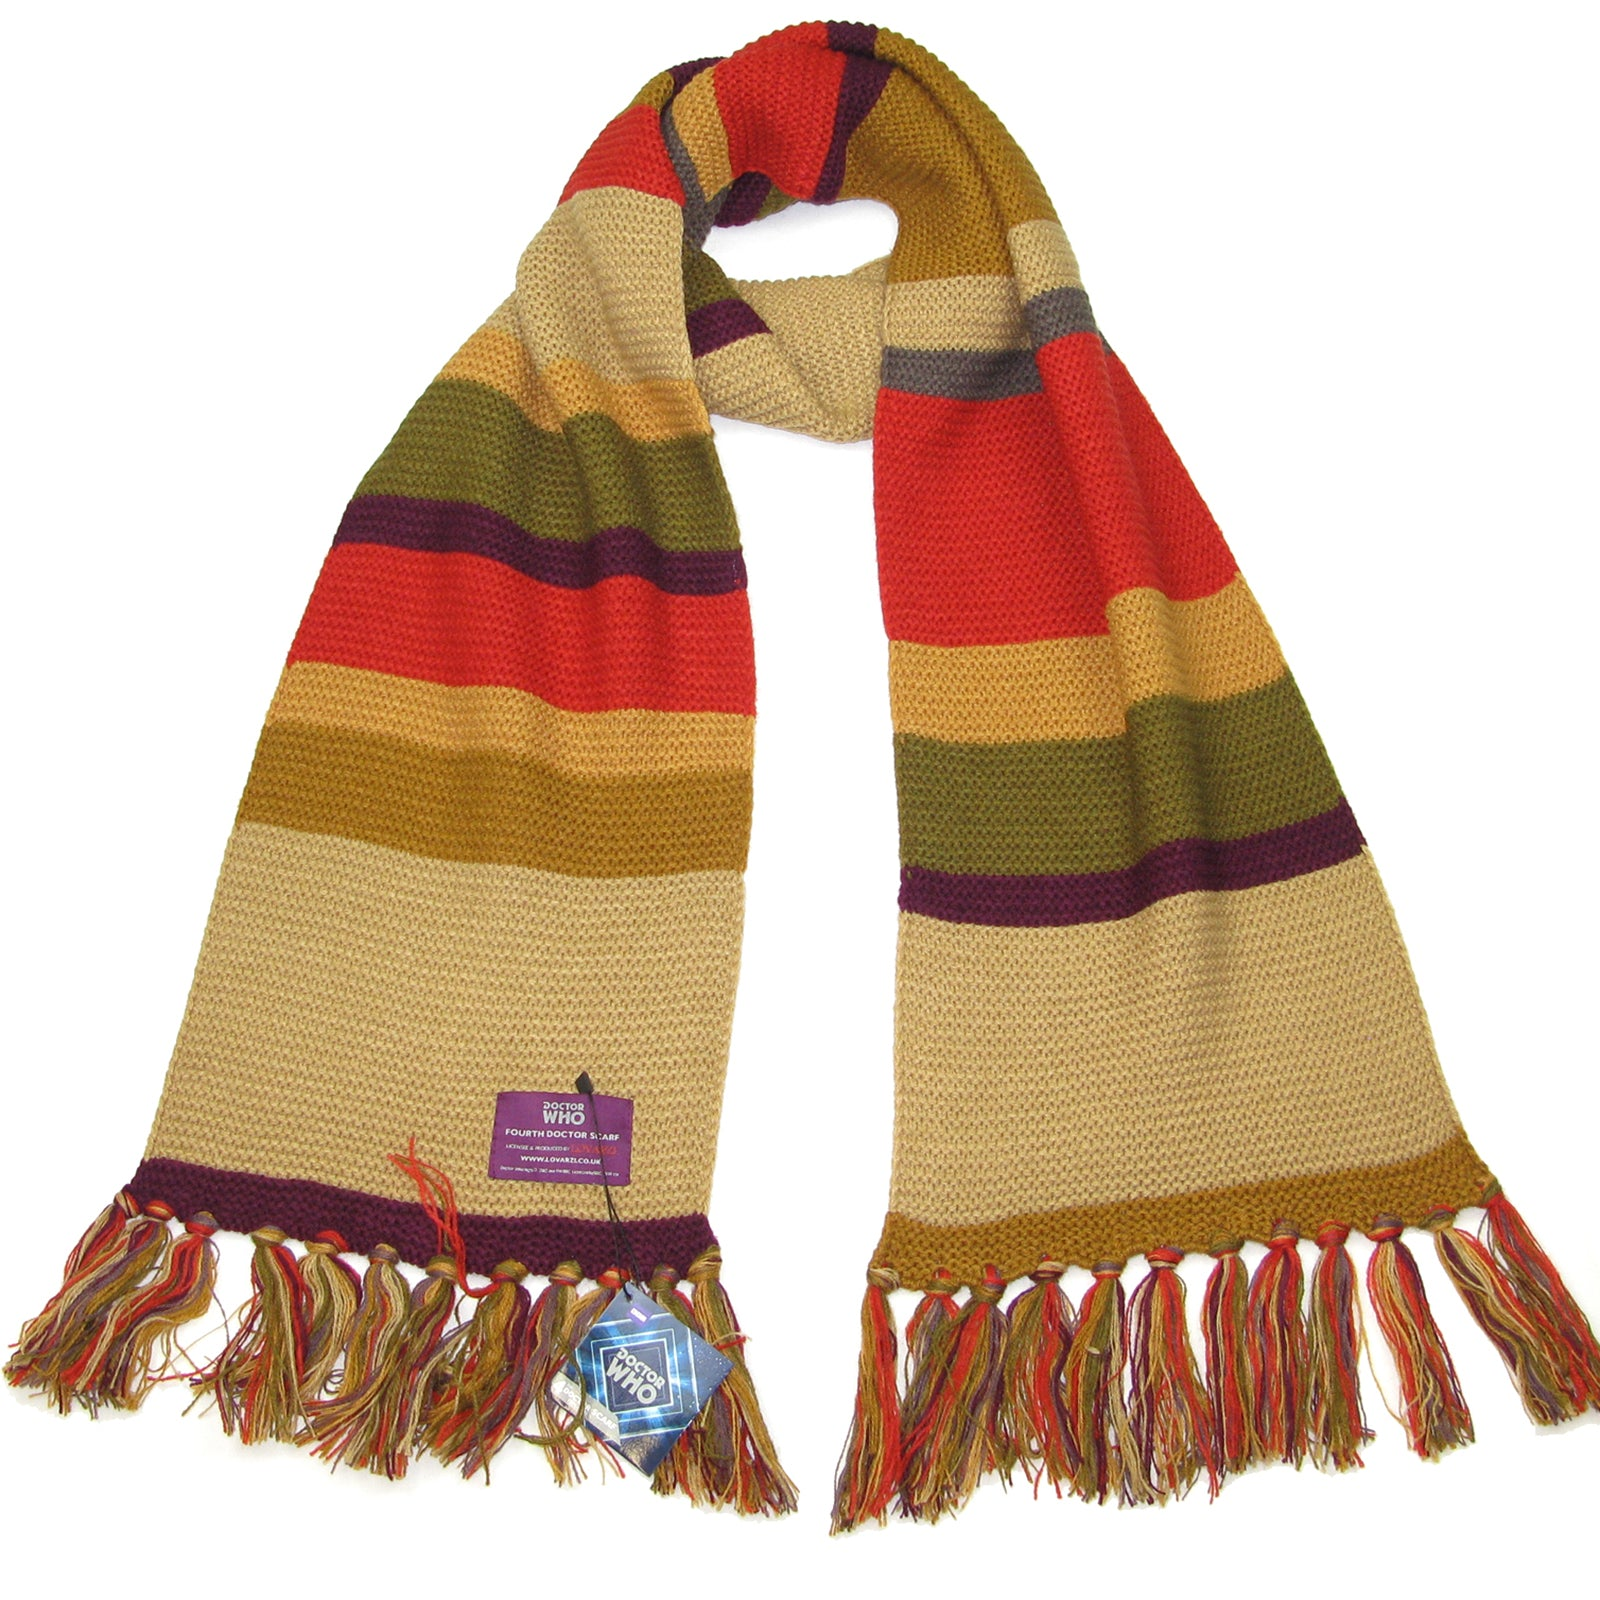 df1433183ea Tom Baker 4th Doctor Scarf-Shorter Striped Scarf Dr Who Fourth ...